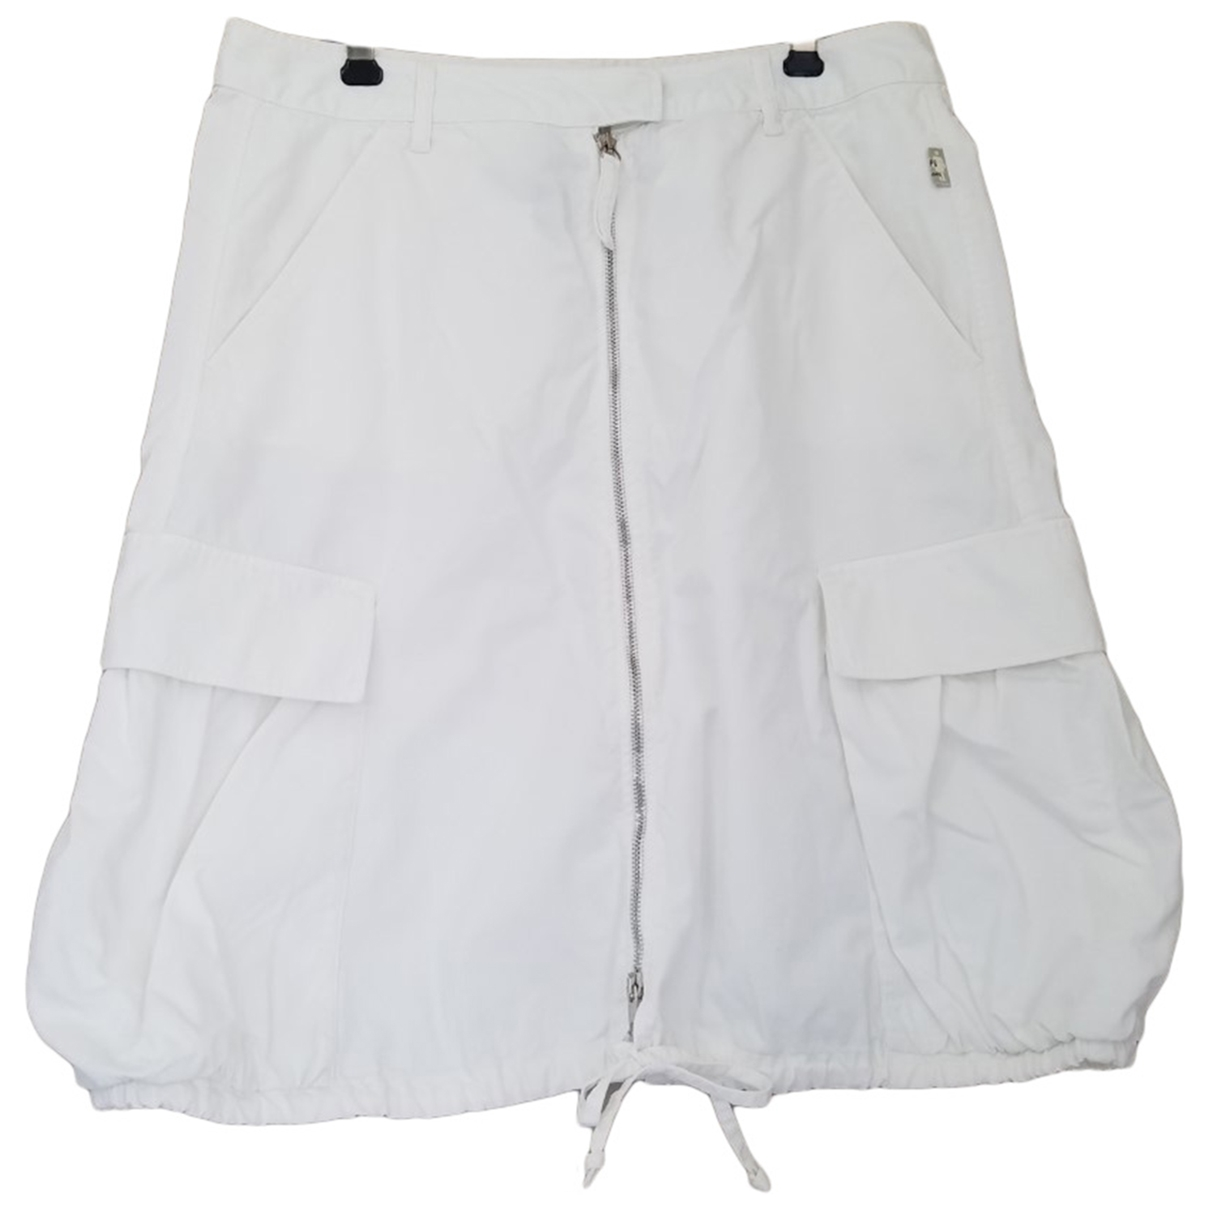 Jean Paul Gaultier \N White Cotton skirt for Women 38 FR